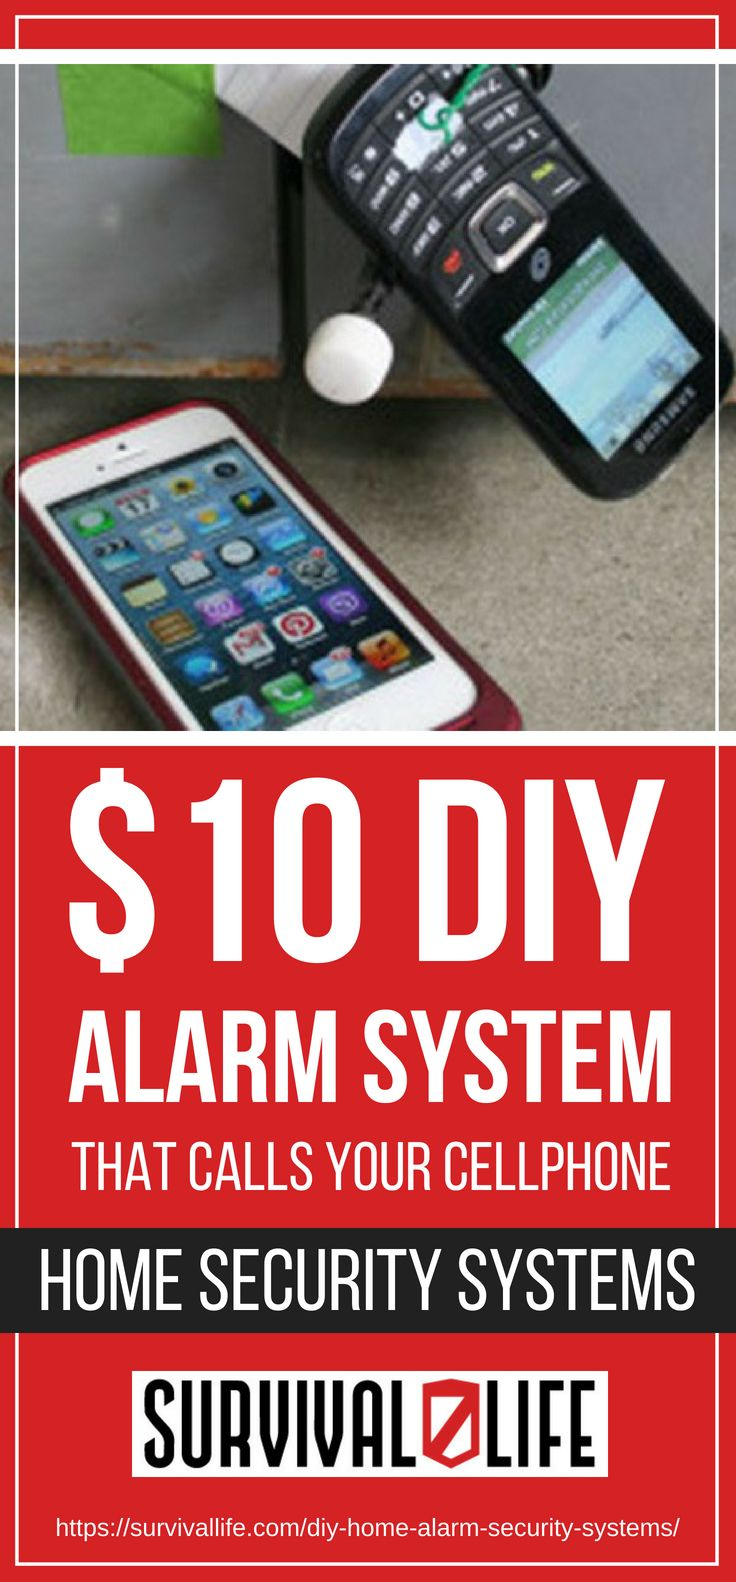 Placard | $10 DIY Alarm System That Calls Your Cellphone | Home Security Systems